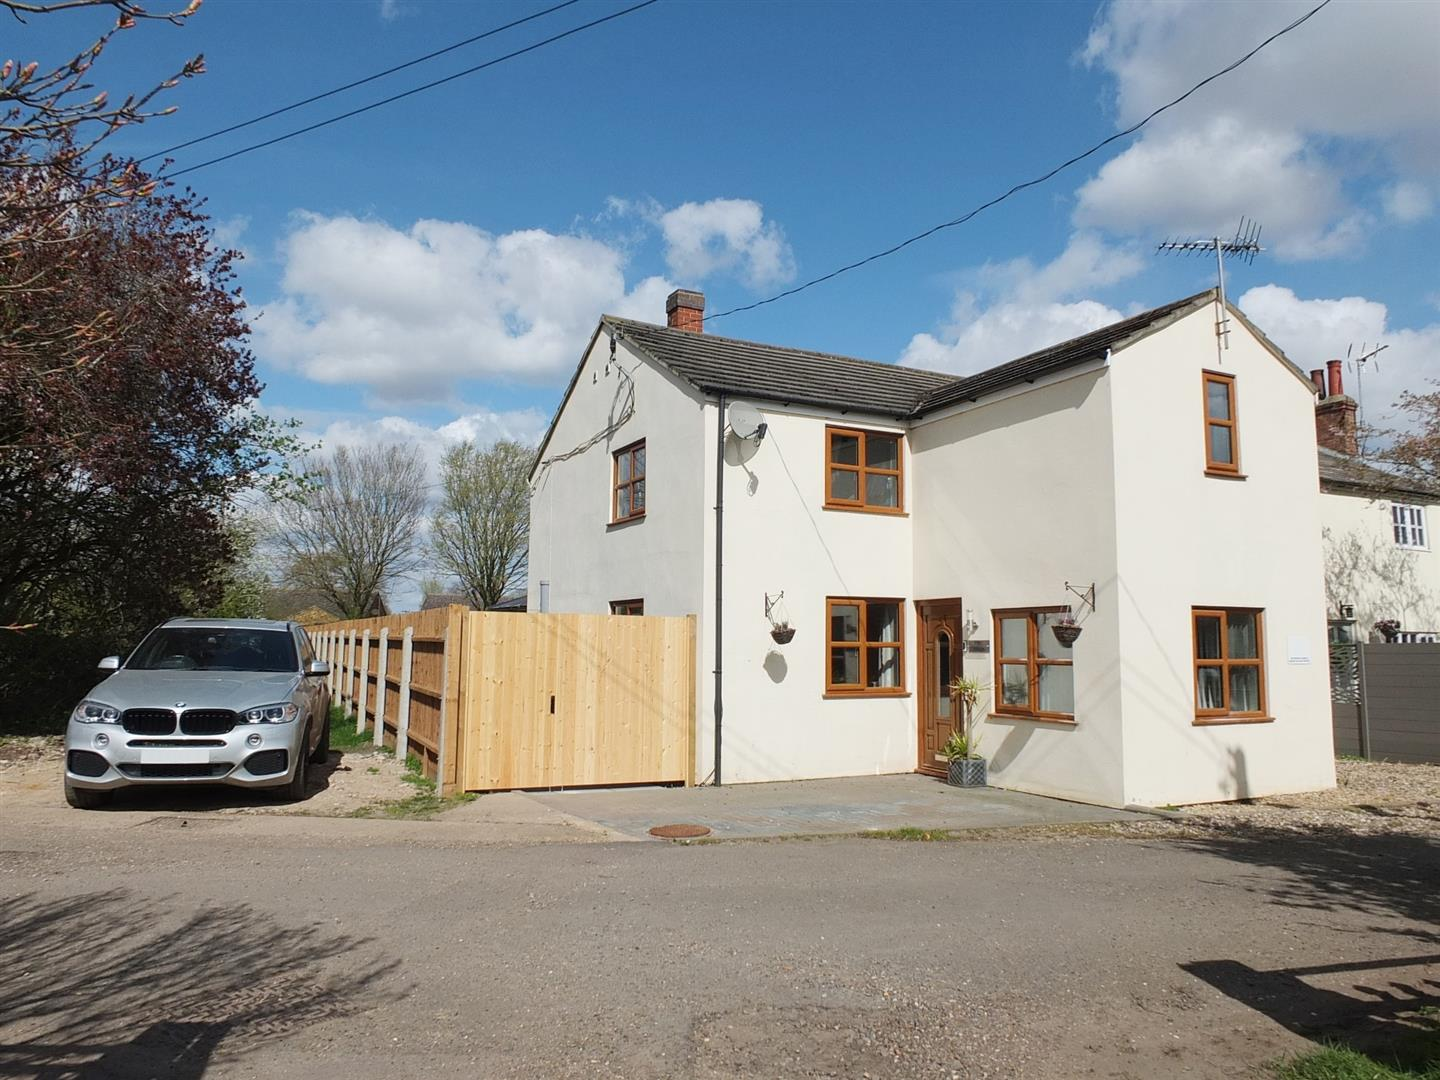 4 bed semi-detached house for sale in Kirkgate, Wisbech - Property Image 1